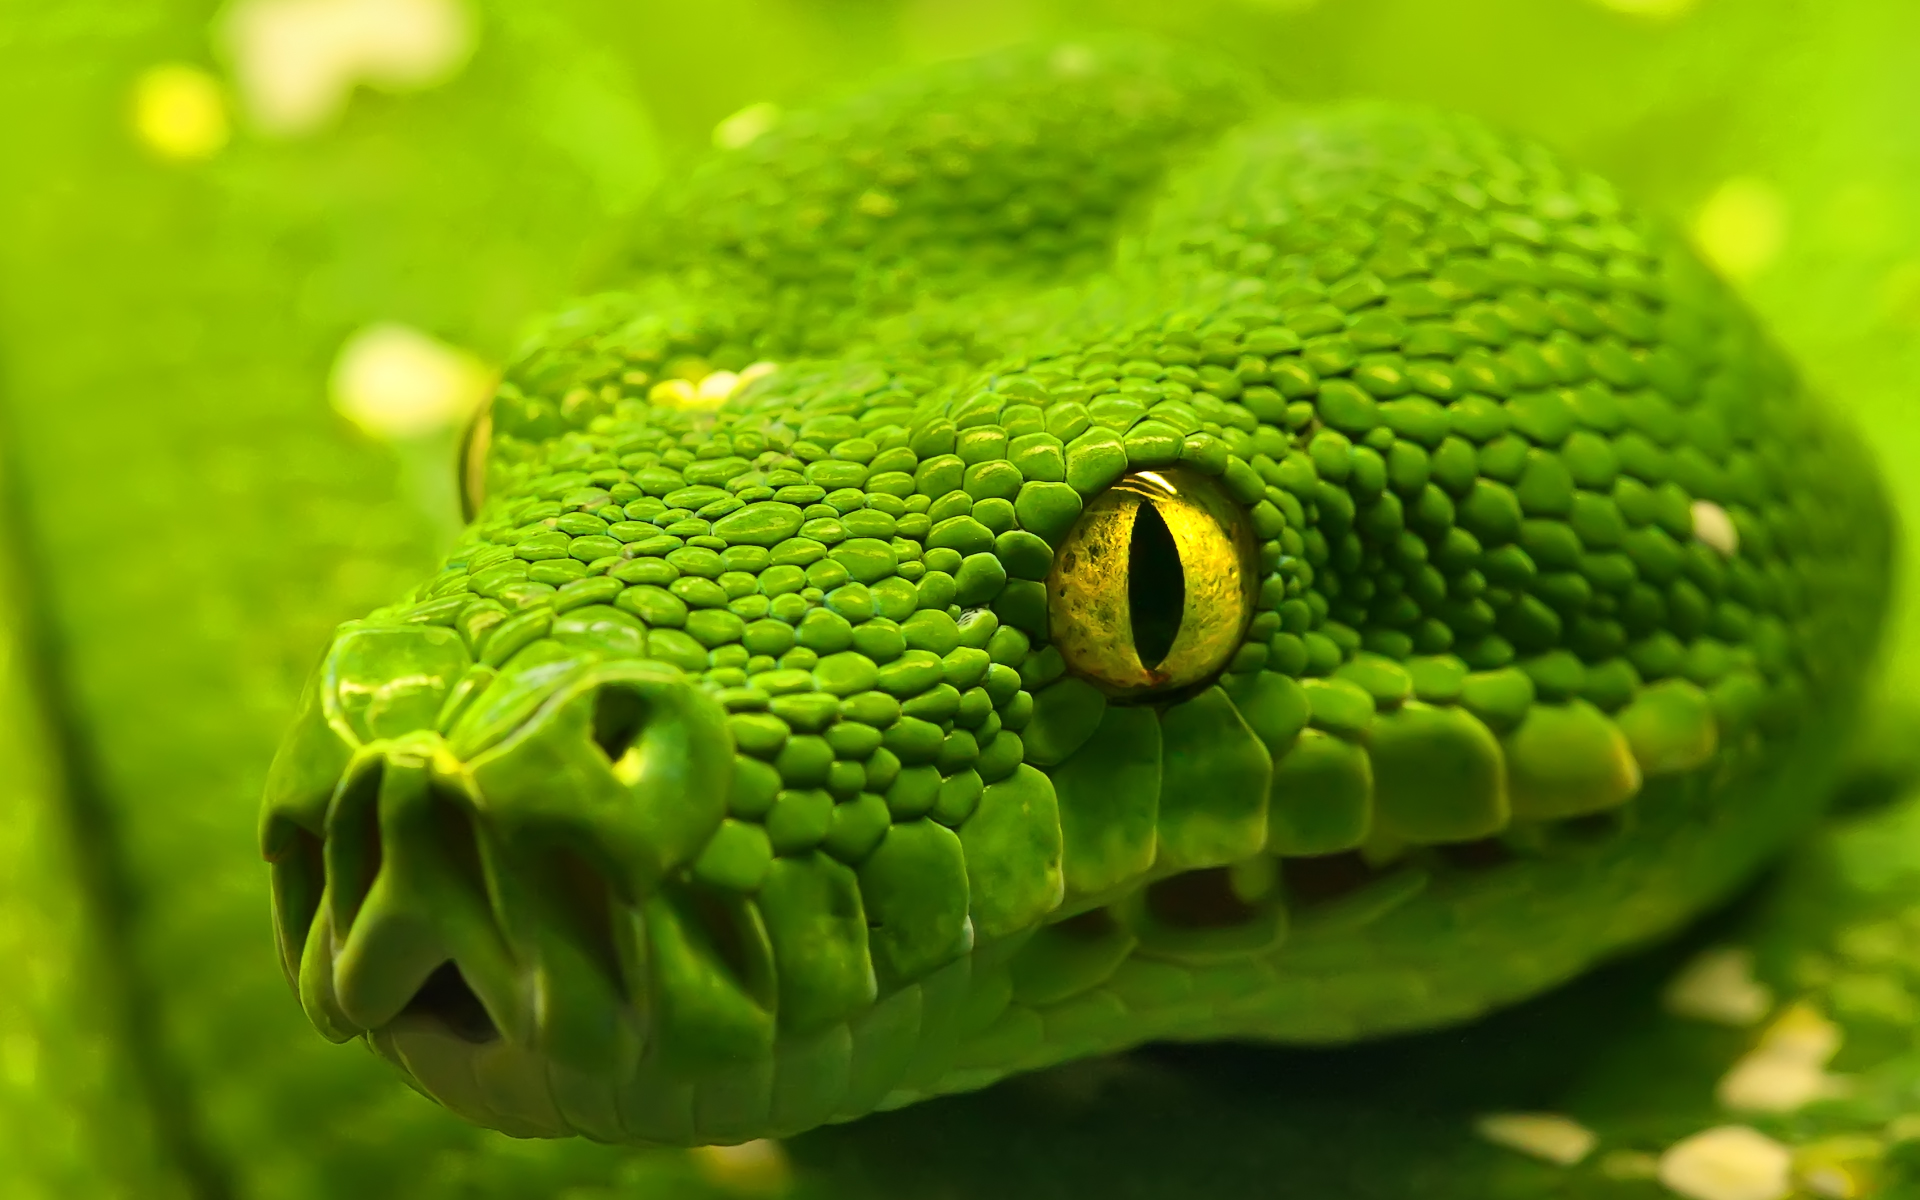 Worlds Top Ten Reptiles Desktop Backgrounds of Wild Snakes